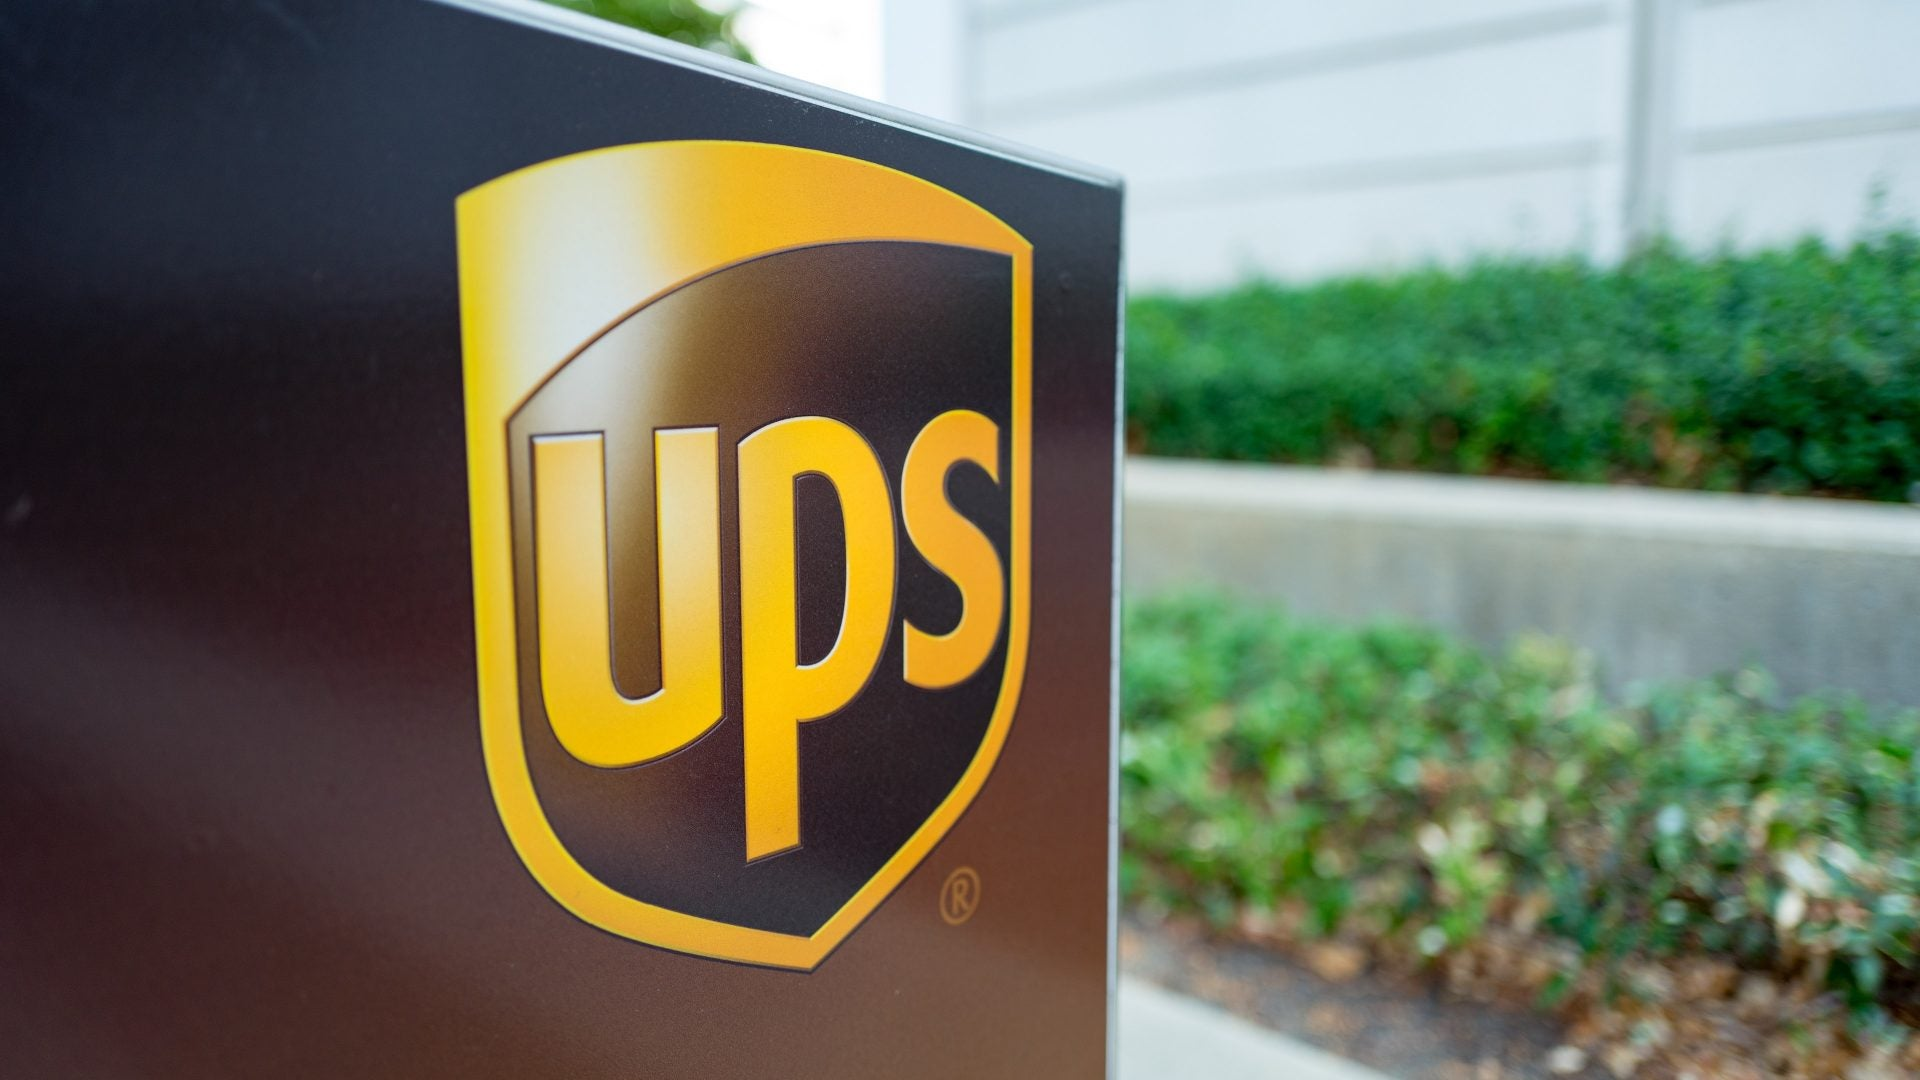 19 UPS Workers Sue Company For Enabling and Encouraging 'Culture of Racism'